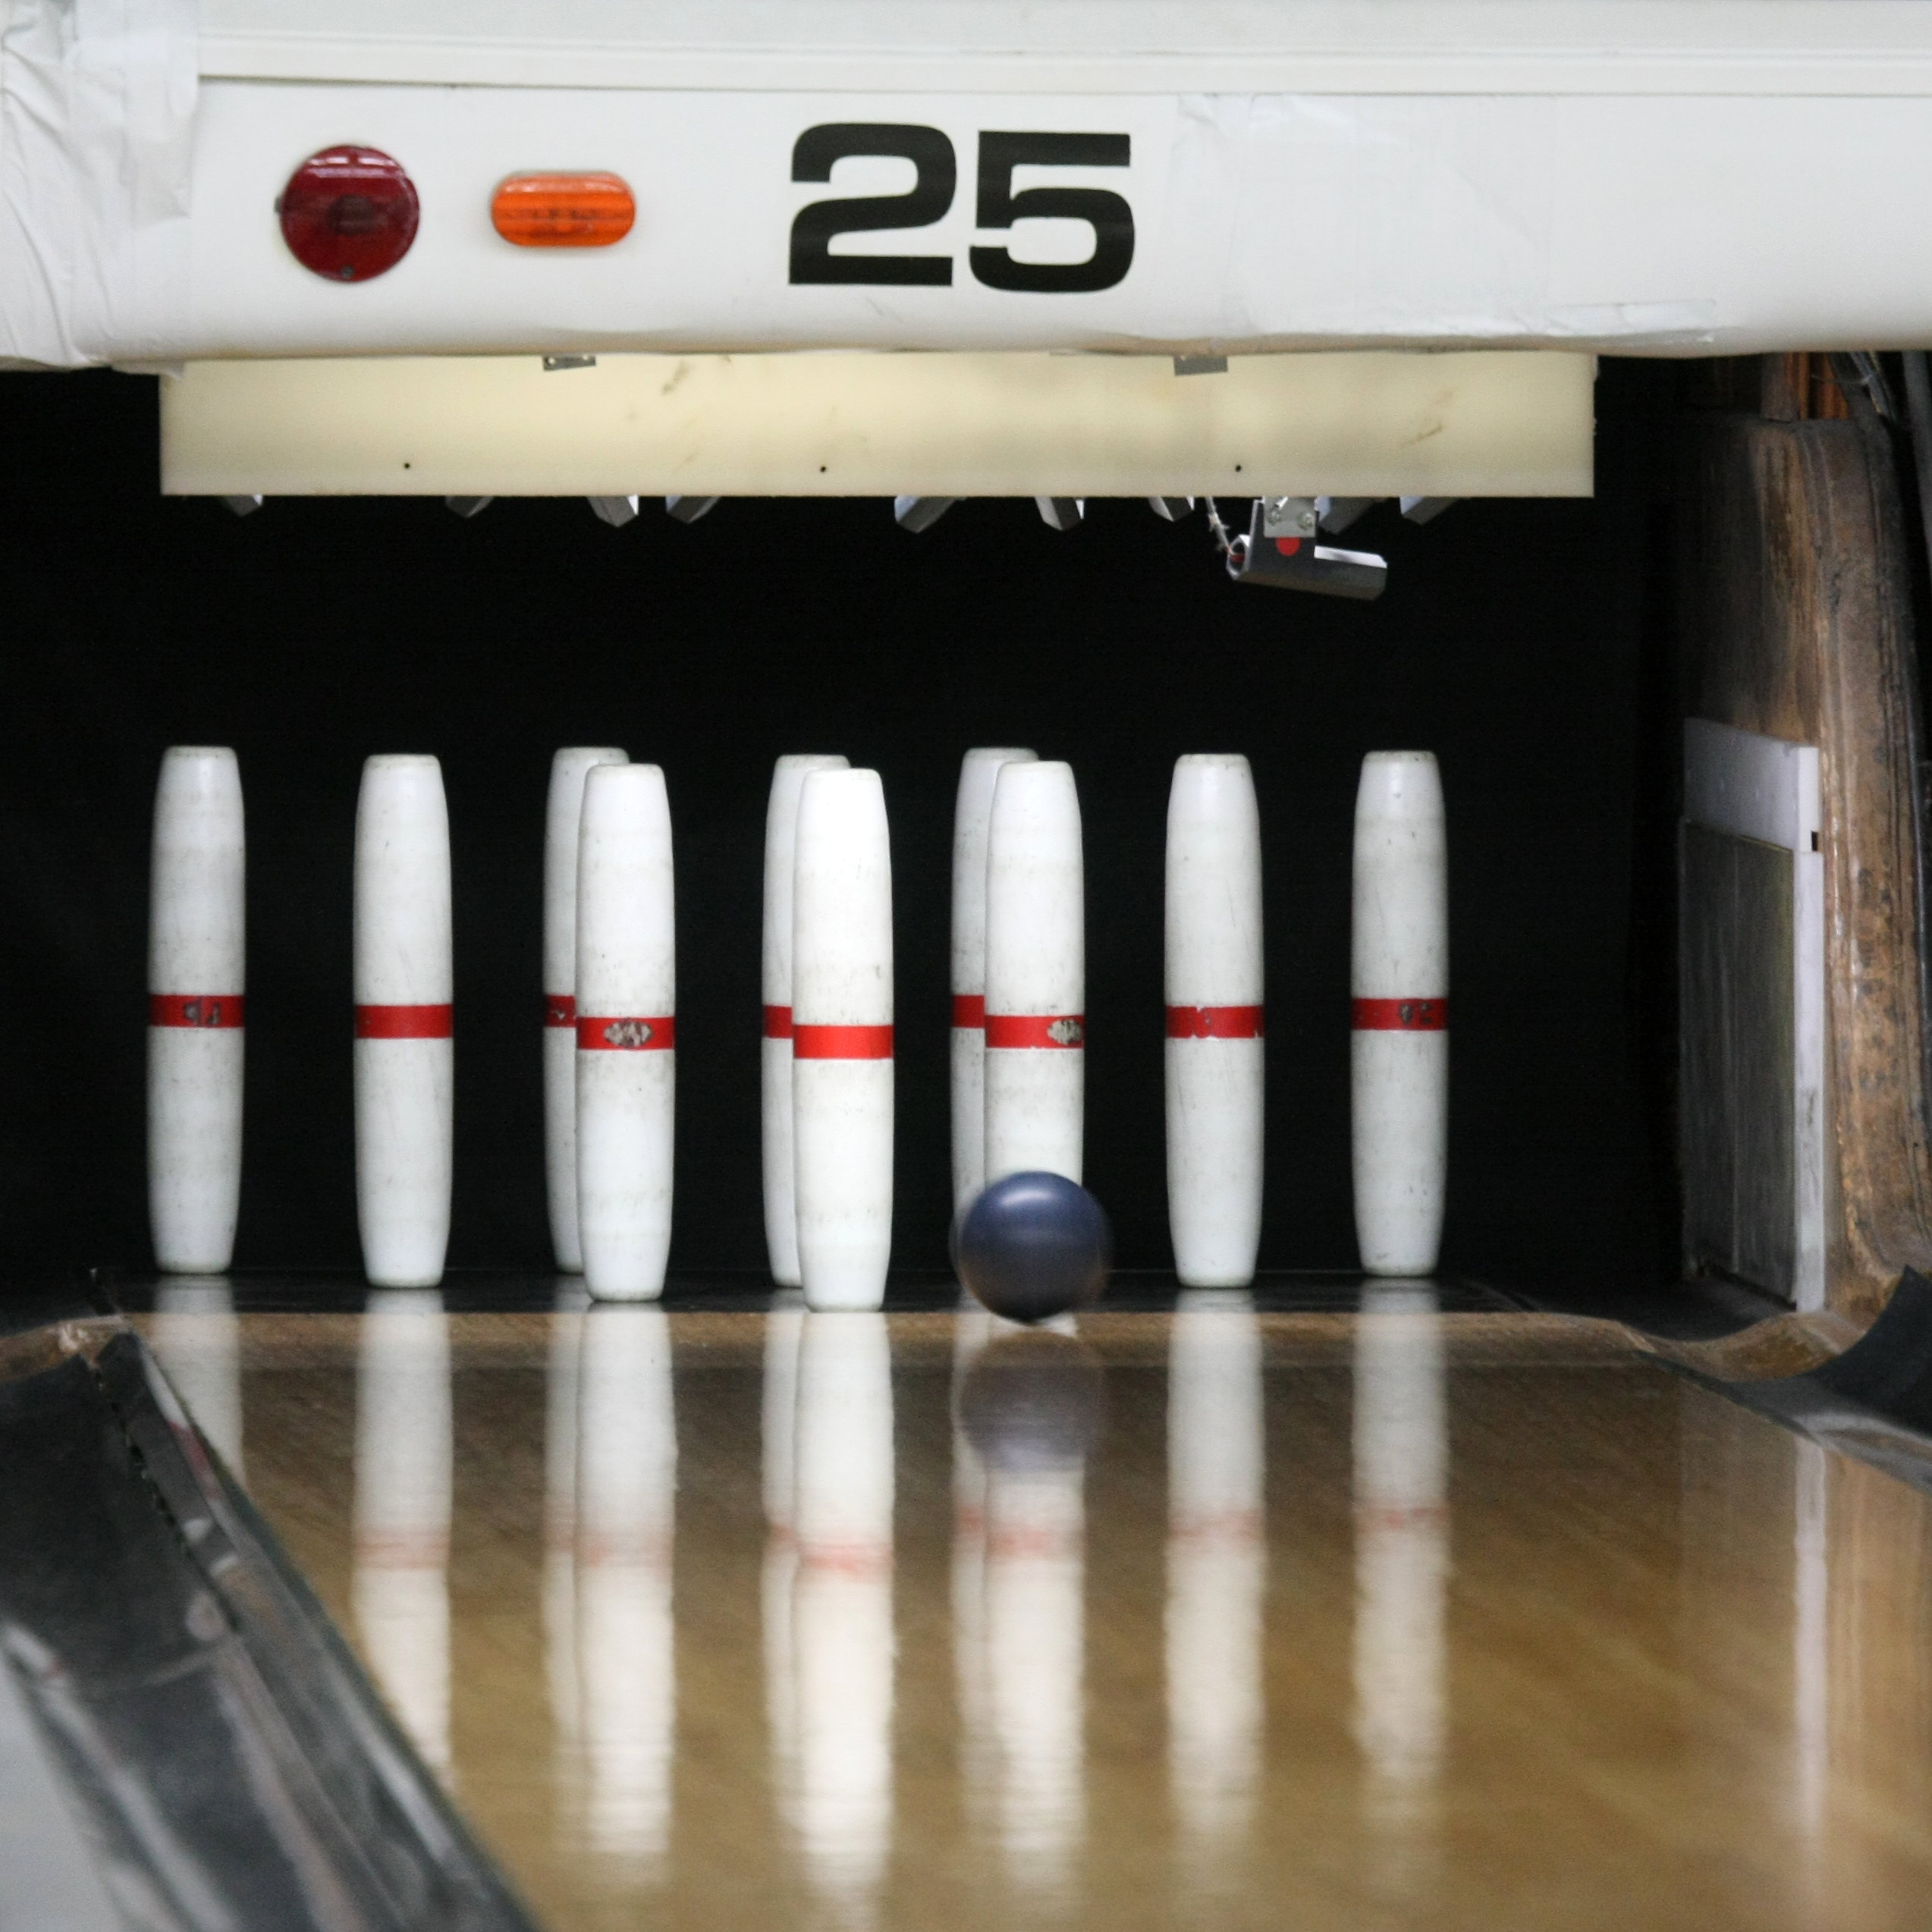 Candlepin-bowling-usa-lane25-rs